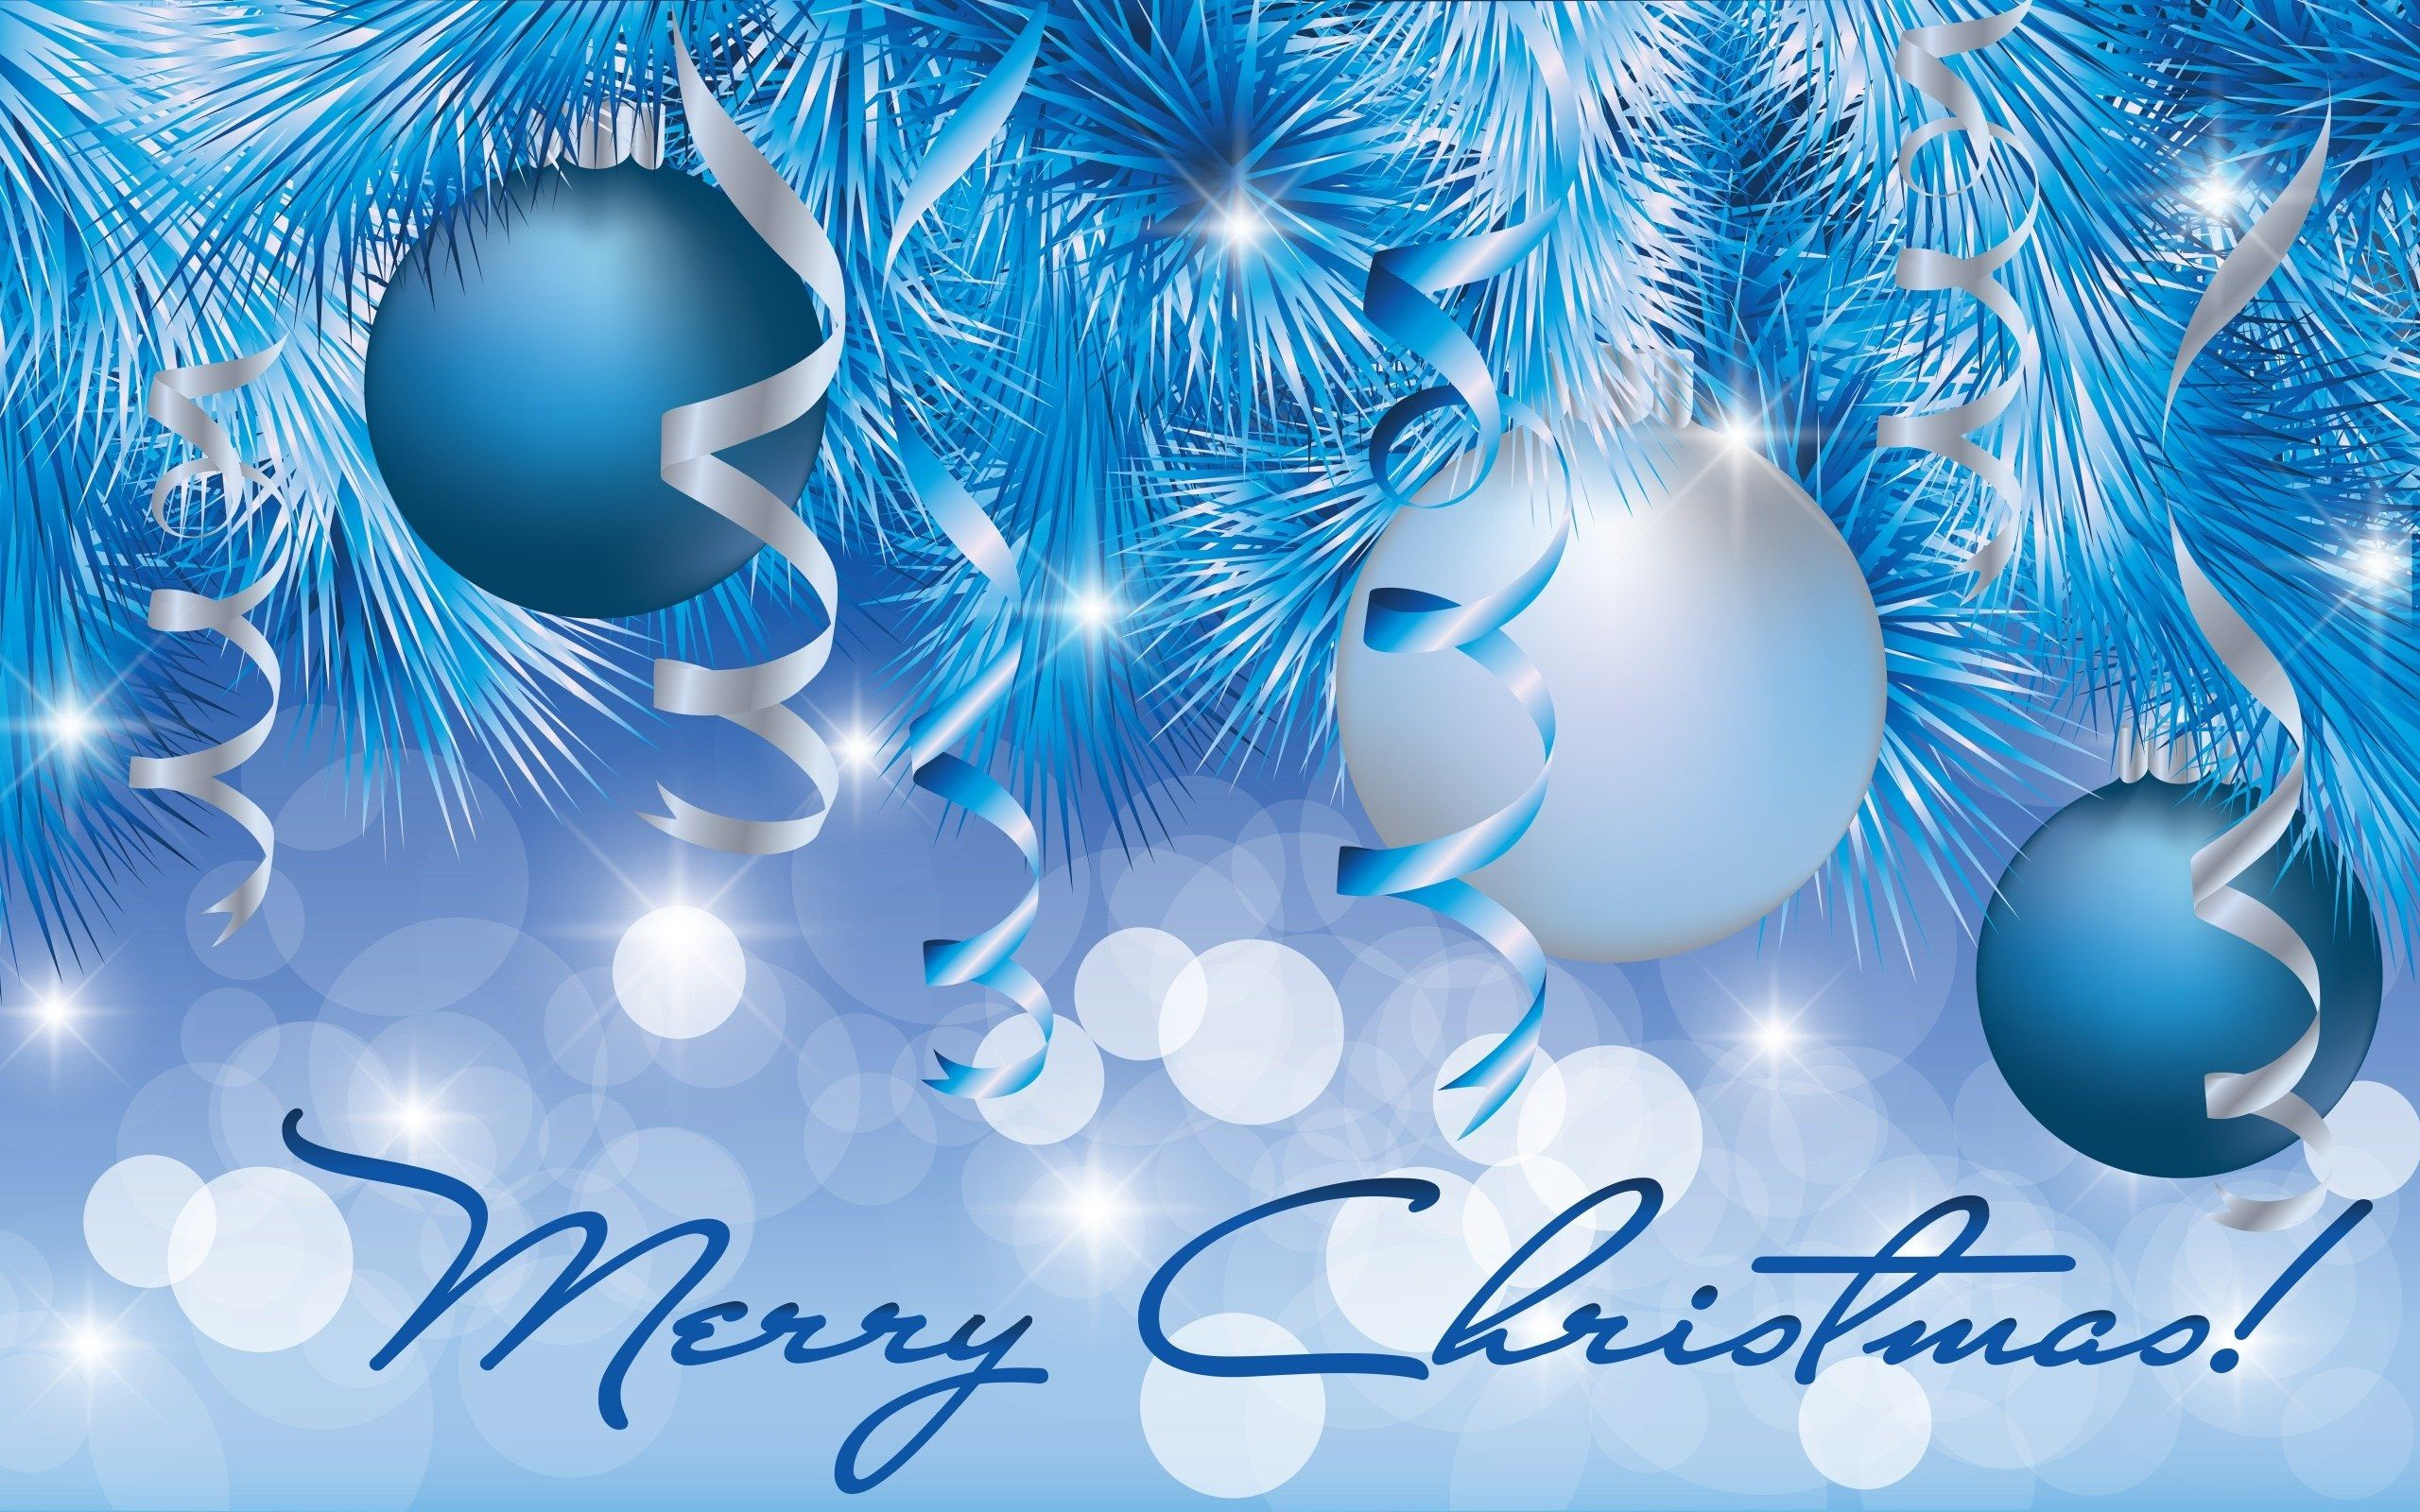 Blue And Silver Christmas Wallpaper Merry Christmas Wallpaper Silver Christmas Wallpaper Christmas Wallpaper Backgrounds